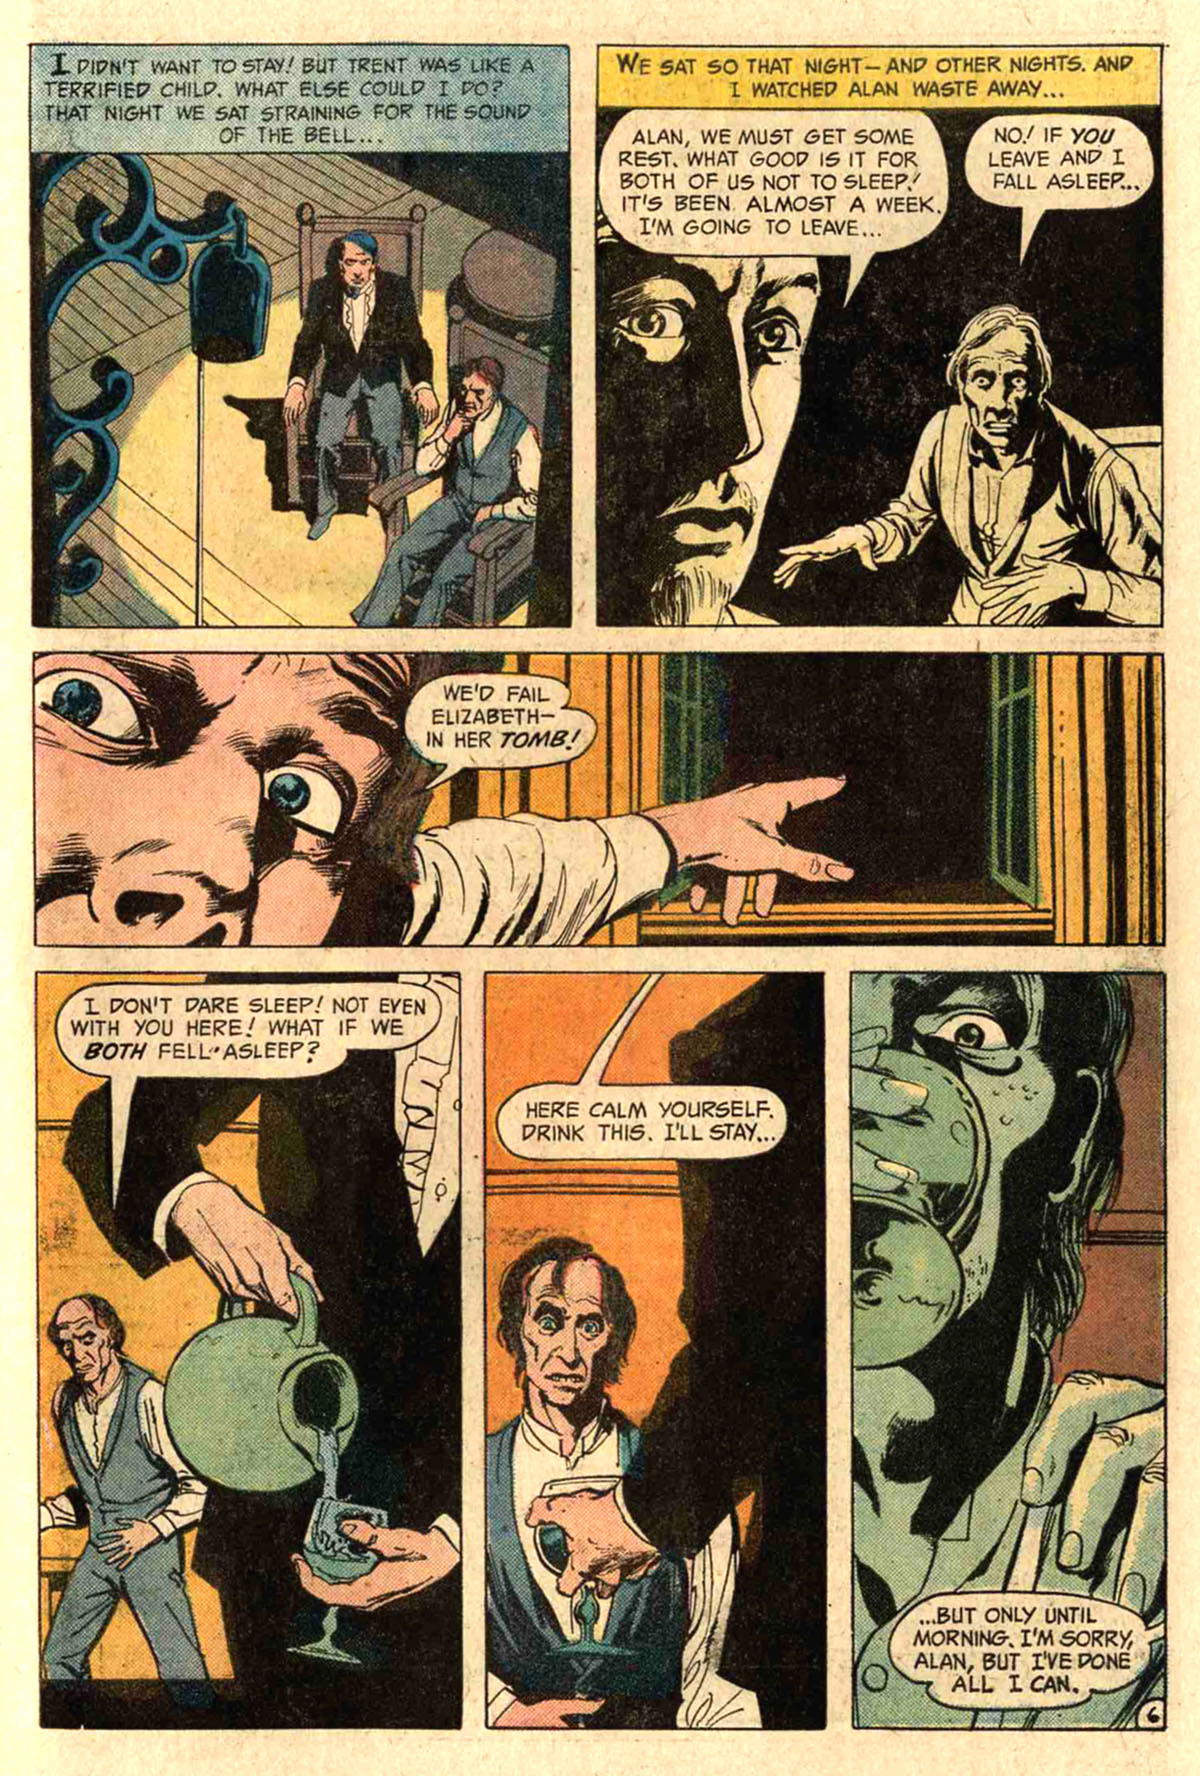 House of Mystery (1951) #236 pg25.